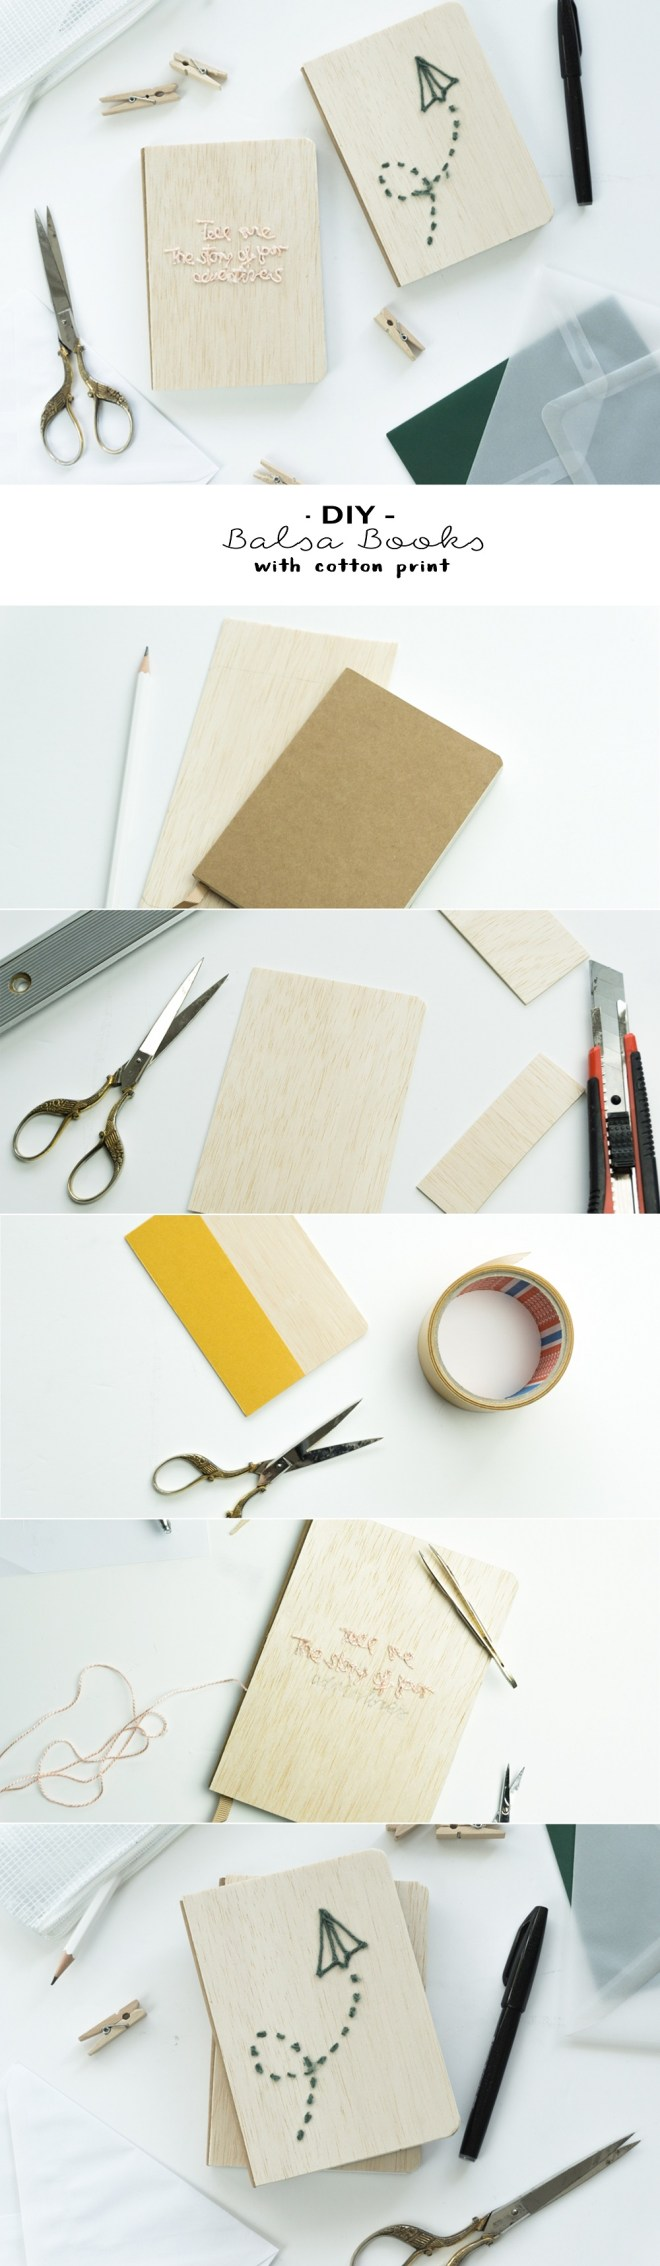 schereleimpapier DIY und Upcycling Blog aus Berlin - kreative Tutorials -DIY Balsa Holz Books